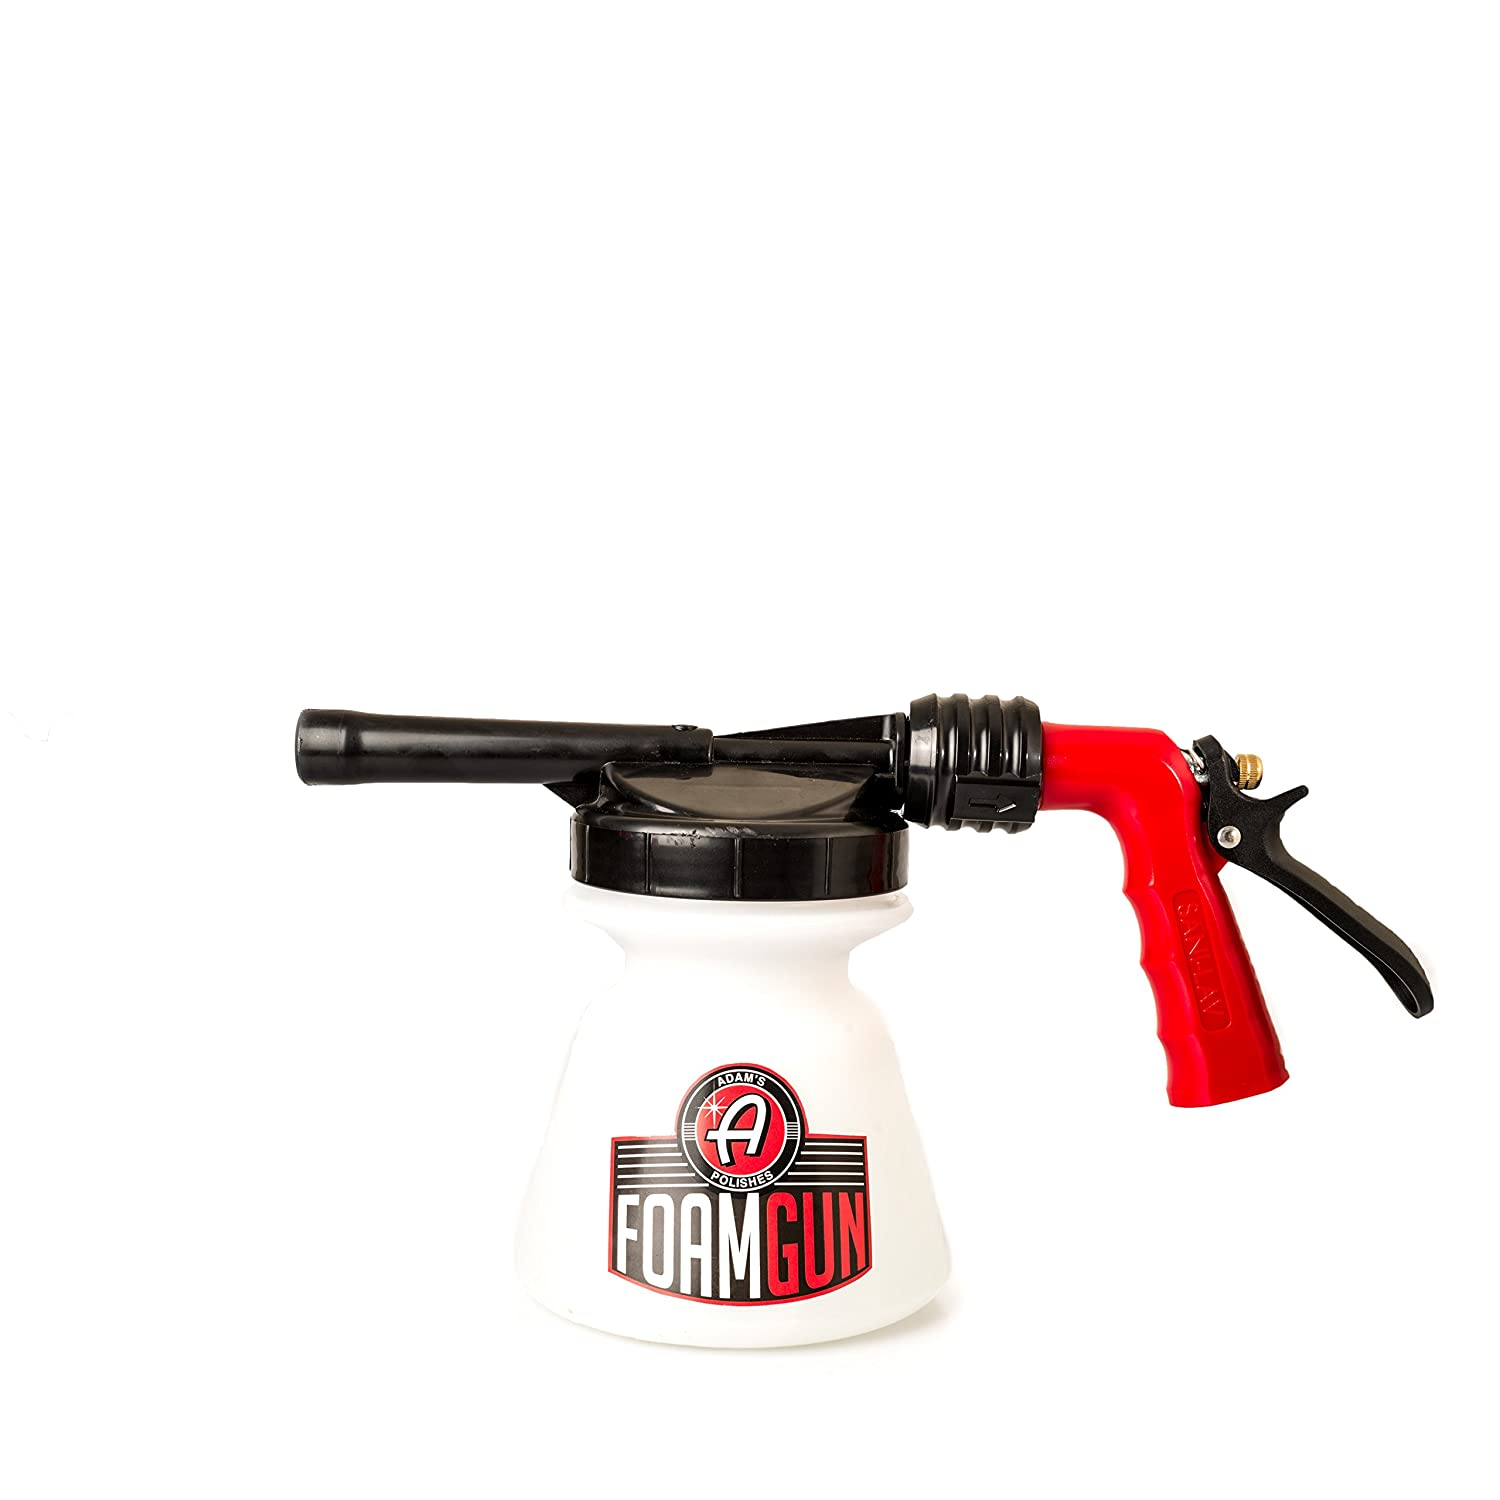 Adam's Standard Foam Gun - Use with Any Car Wash Soap & Garden Hose for Thick Suds - Detailing Tool Does Not Require Pressure Washer & Won't Remove Wax Sealants or Ceramic Coatings from Car Boat RV